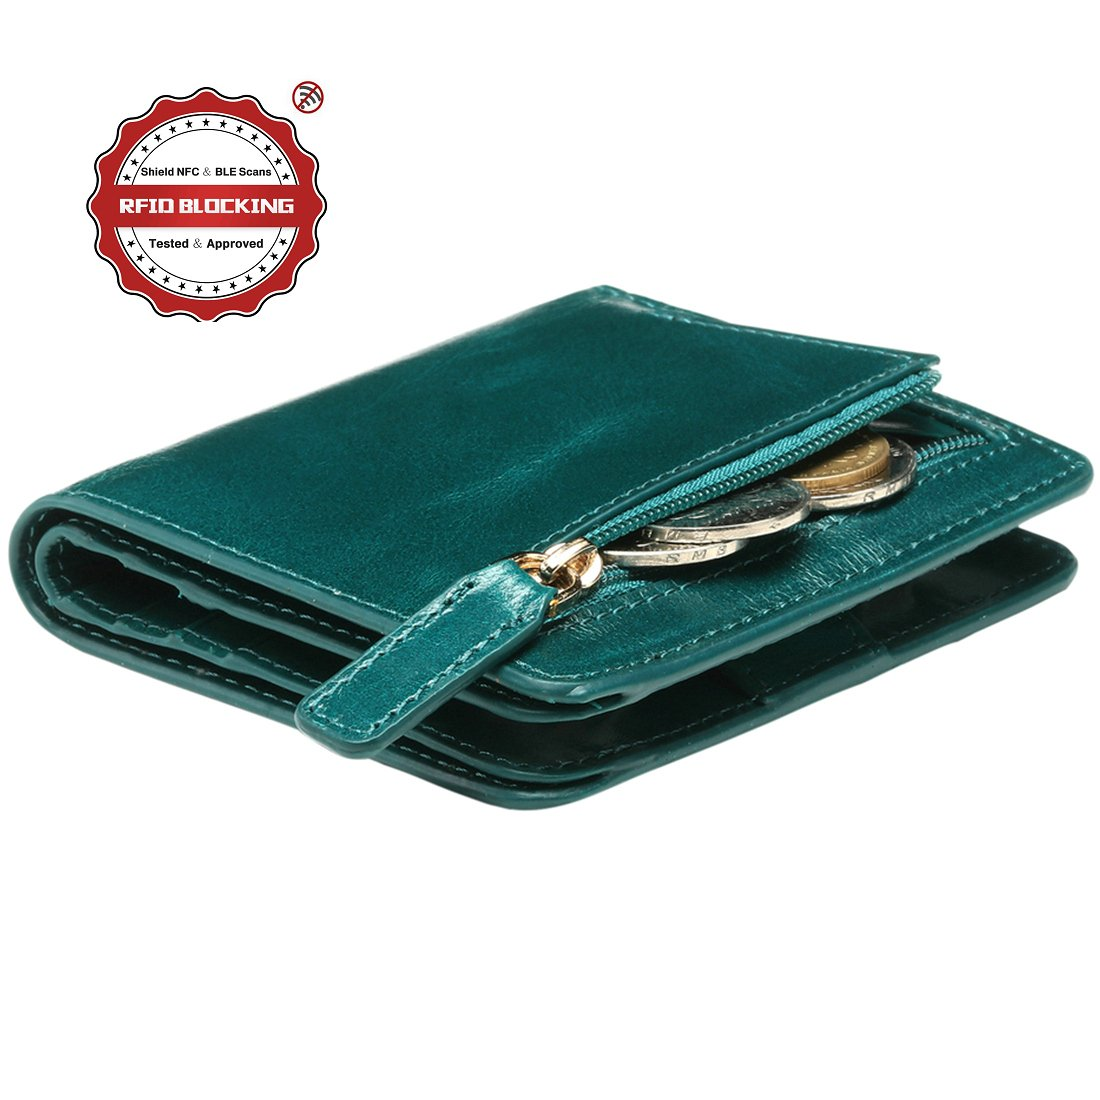 Itslife Women's Rfid Blocking Small Compact Bifold Leather Pocket Wallet Ladies Mini Purse with id Window(Peacock Green)